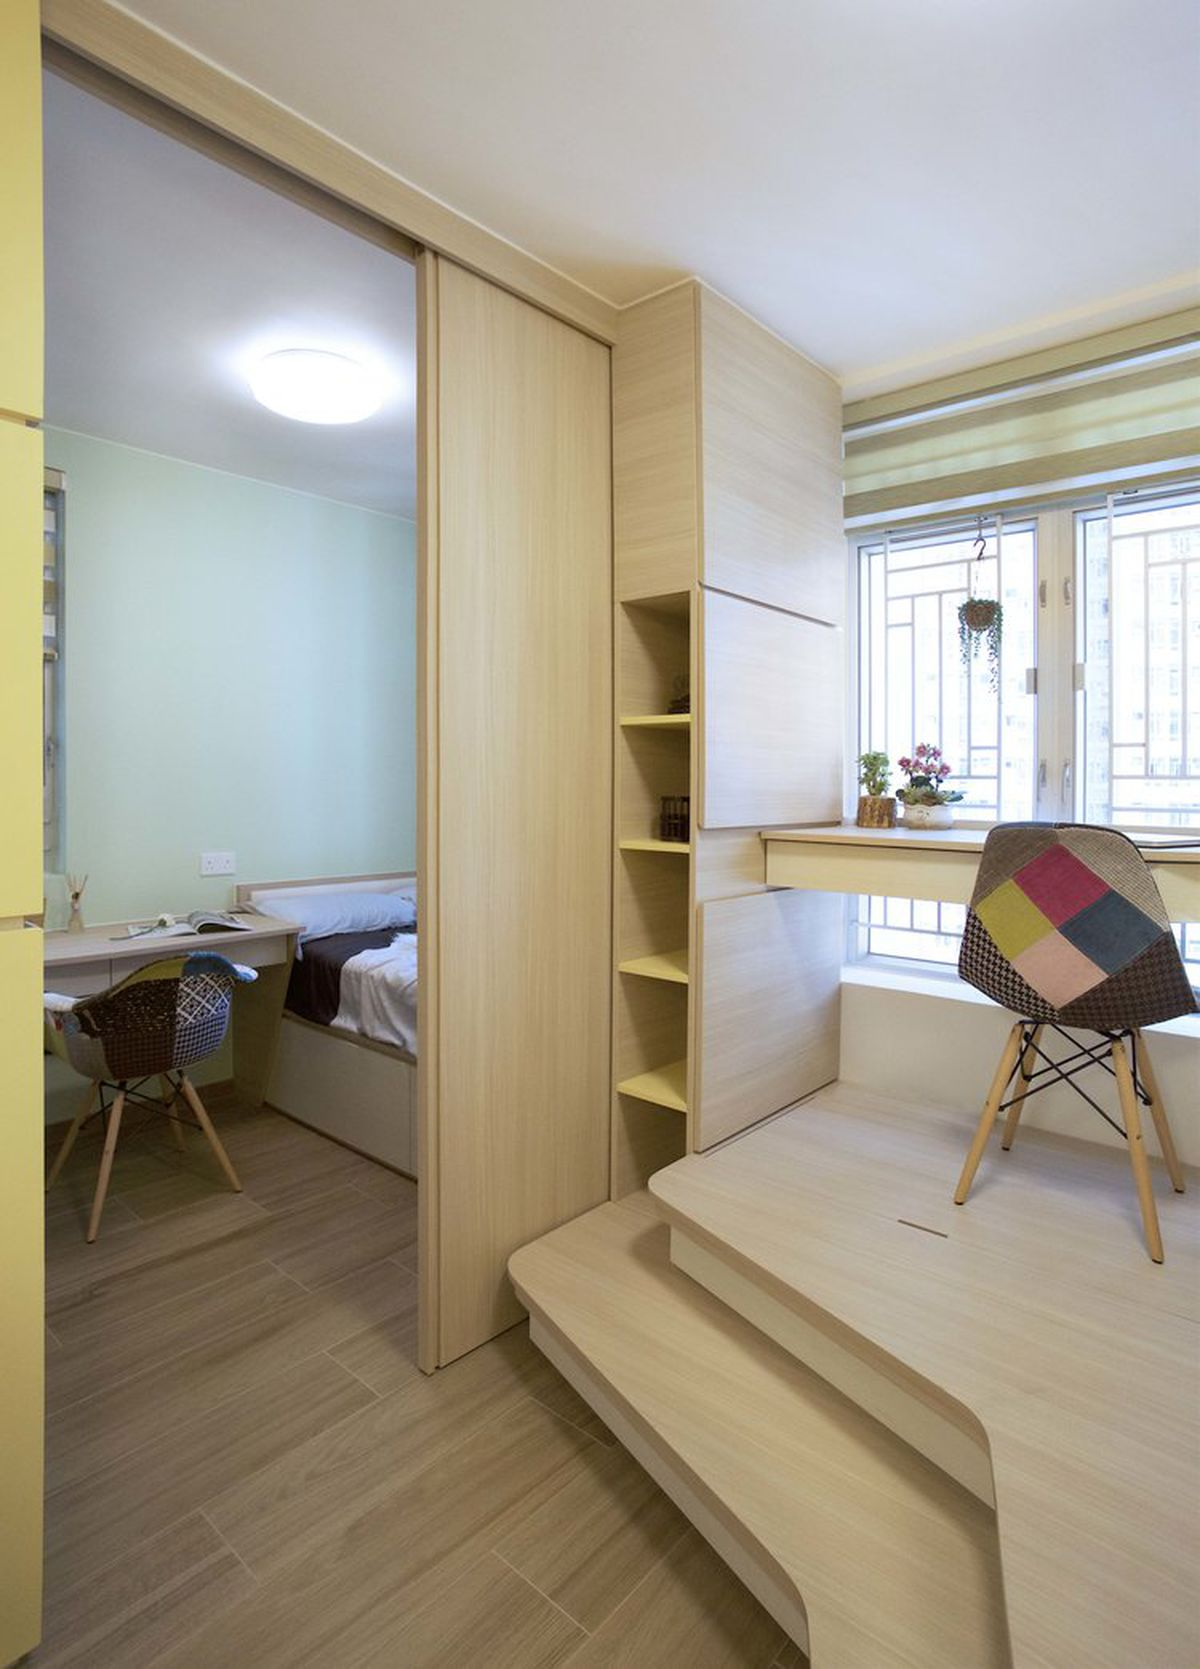 Micro apartment for family of 3 doubles as ceramics gallery Curbed